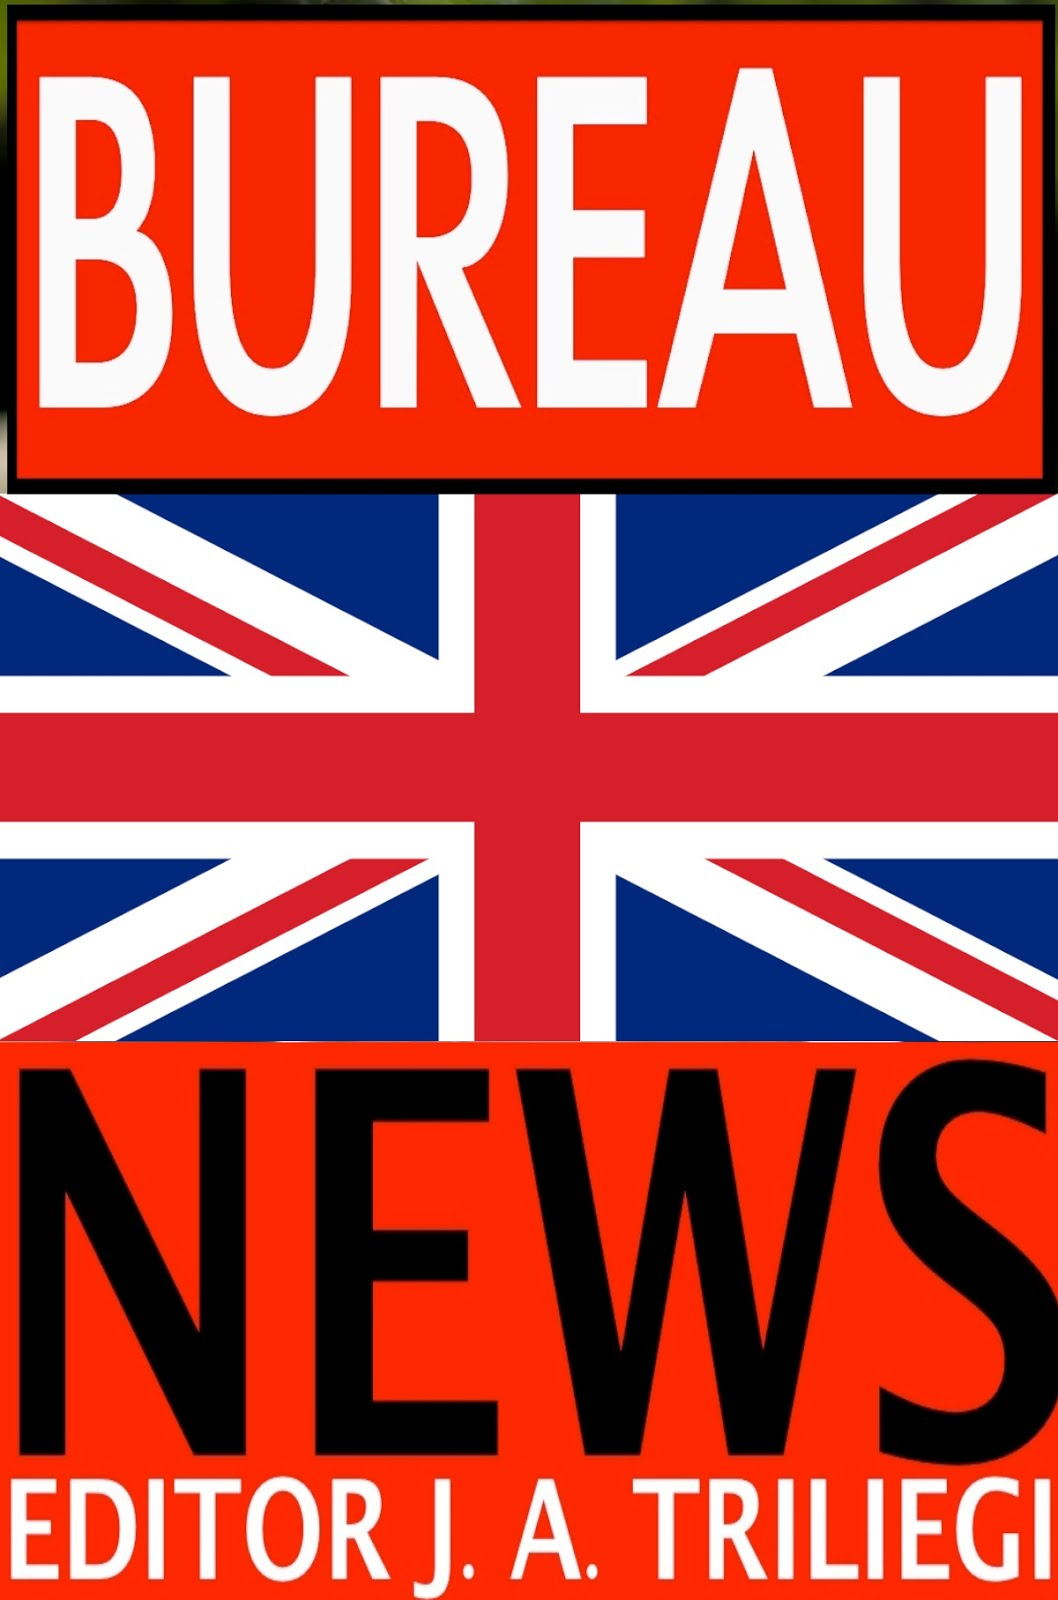 BUREAU NEWS IN THE UK